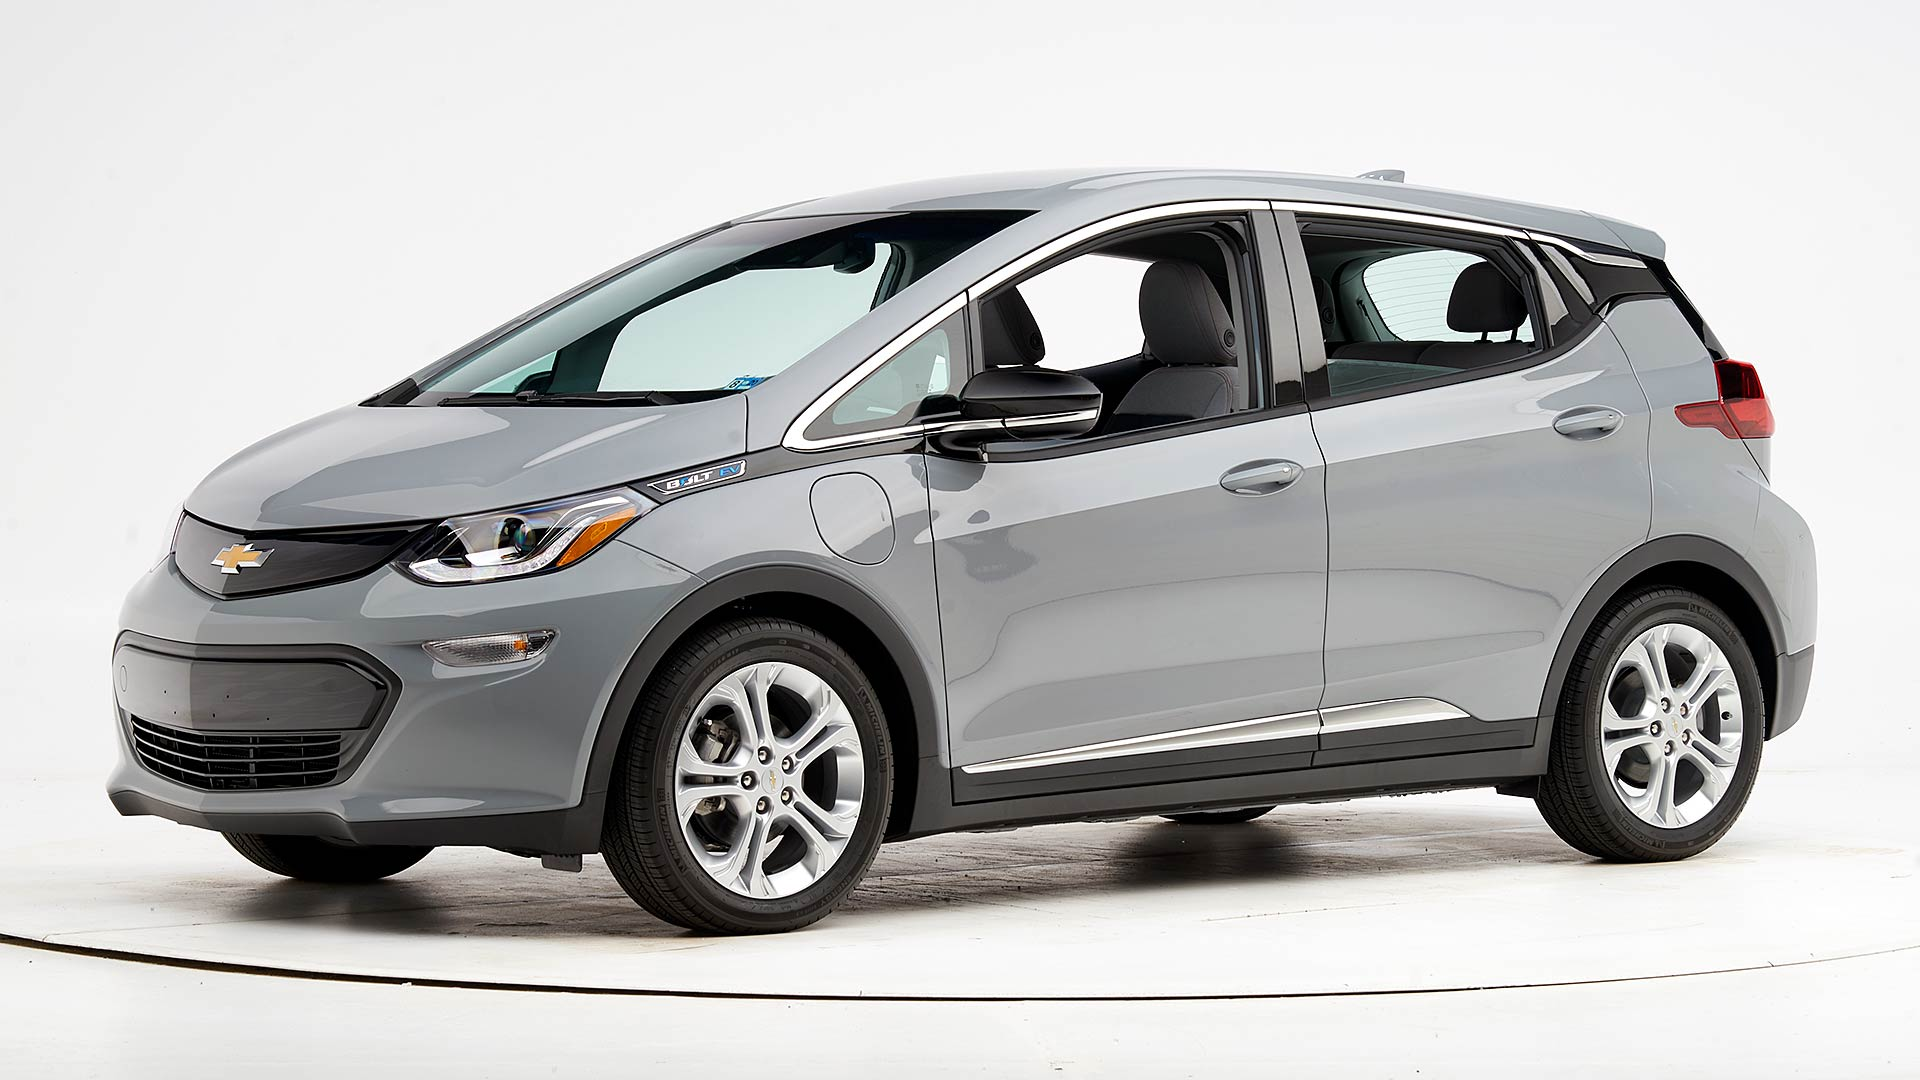 2019 Chevrolet Bolt 4-door hatchback